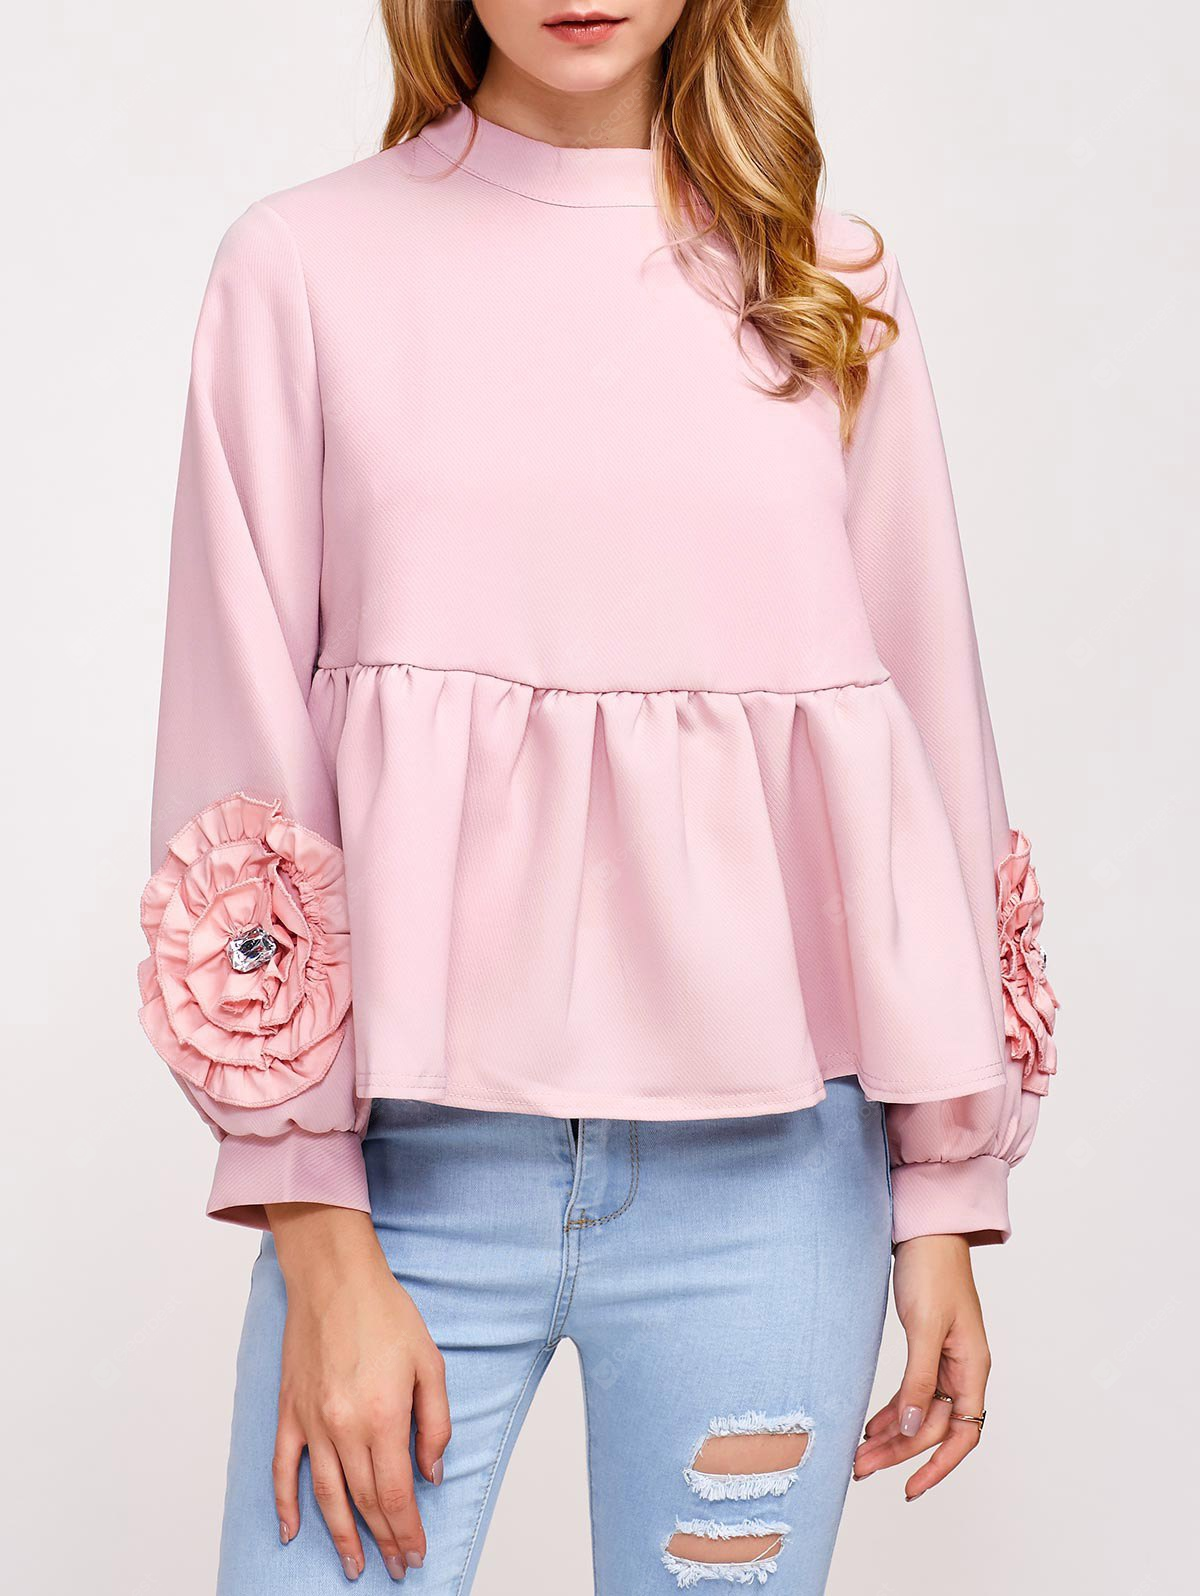 Flower Embellished Puff Sleeve Blouse PINK